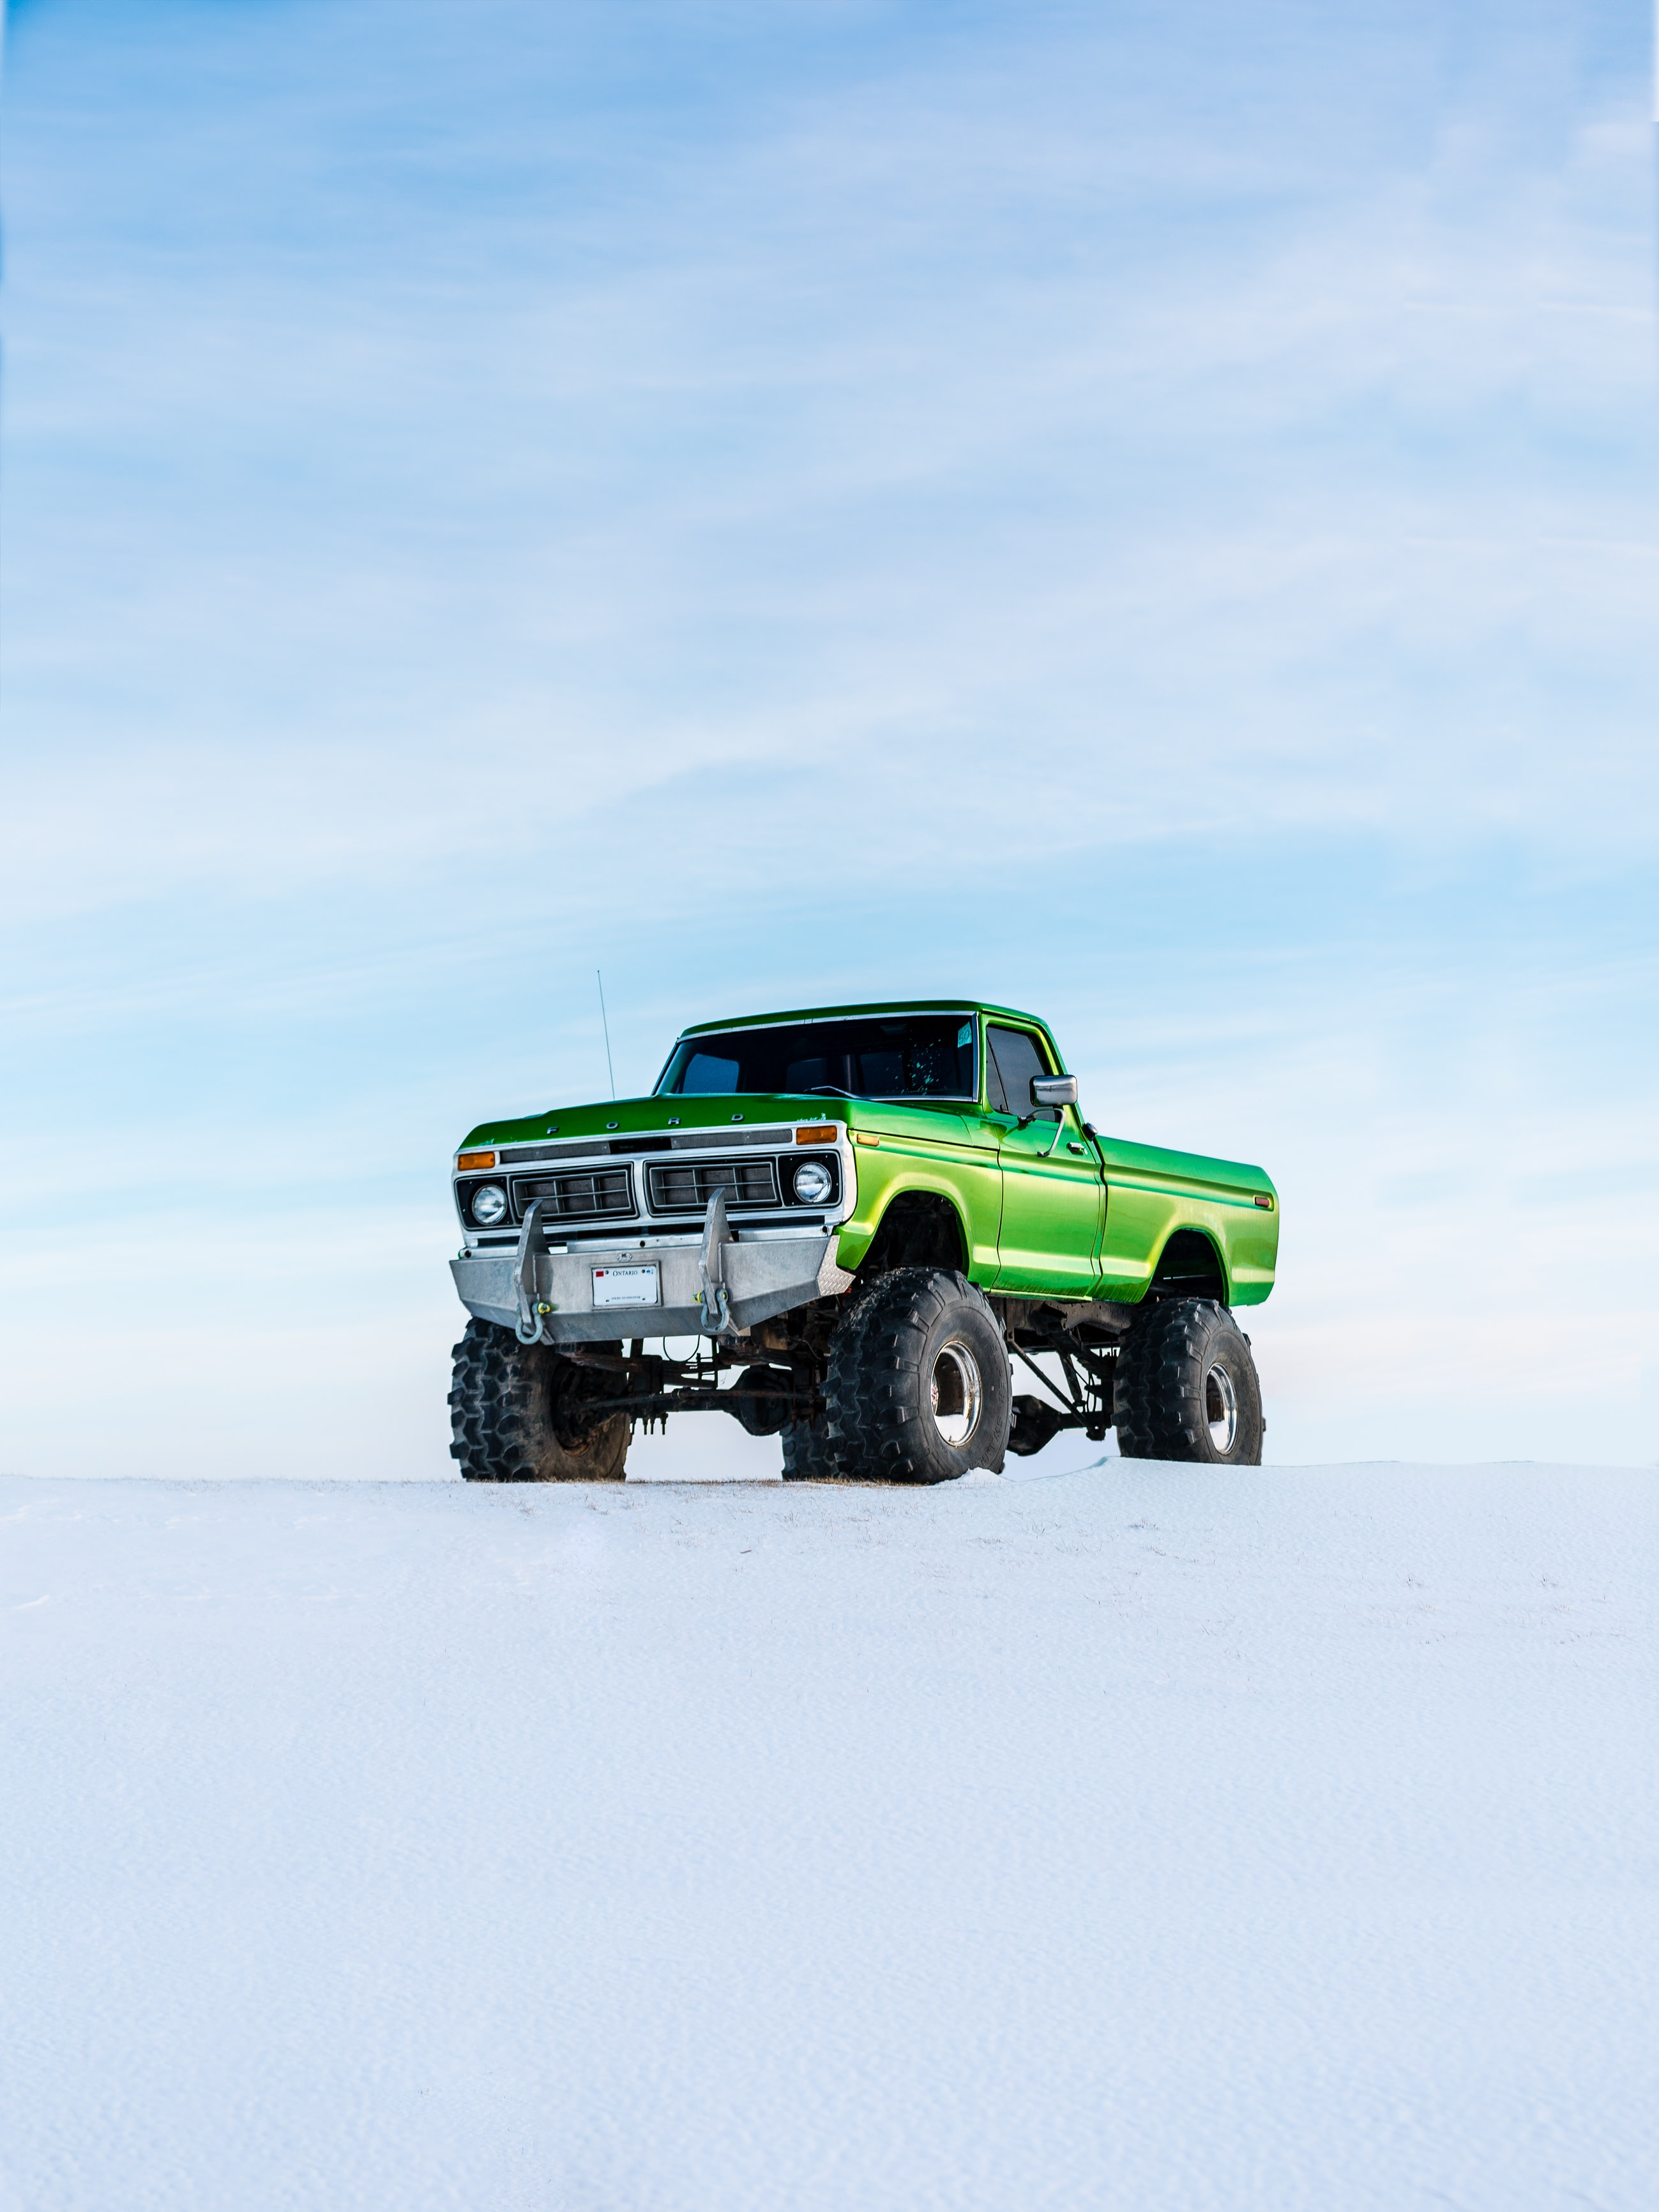 A large green truck parked in the snow in Elora